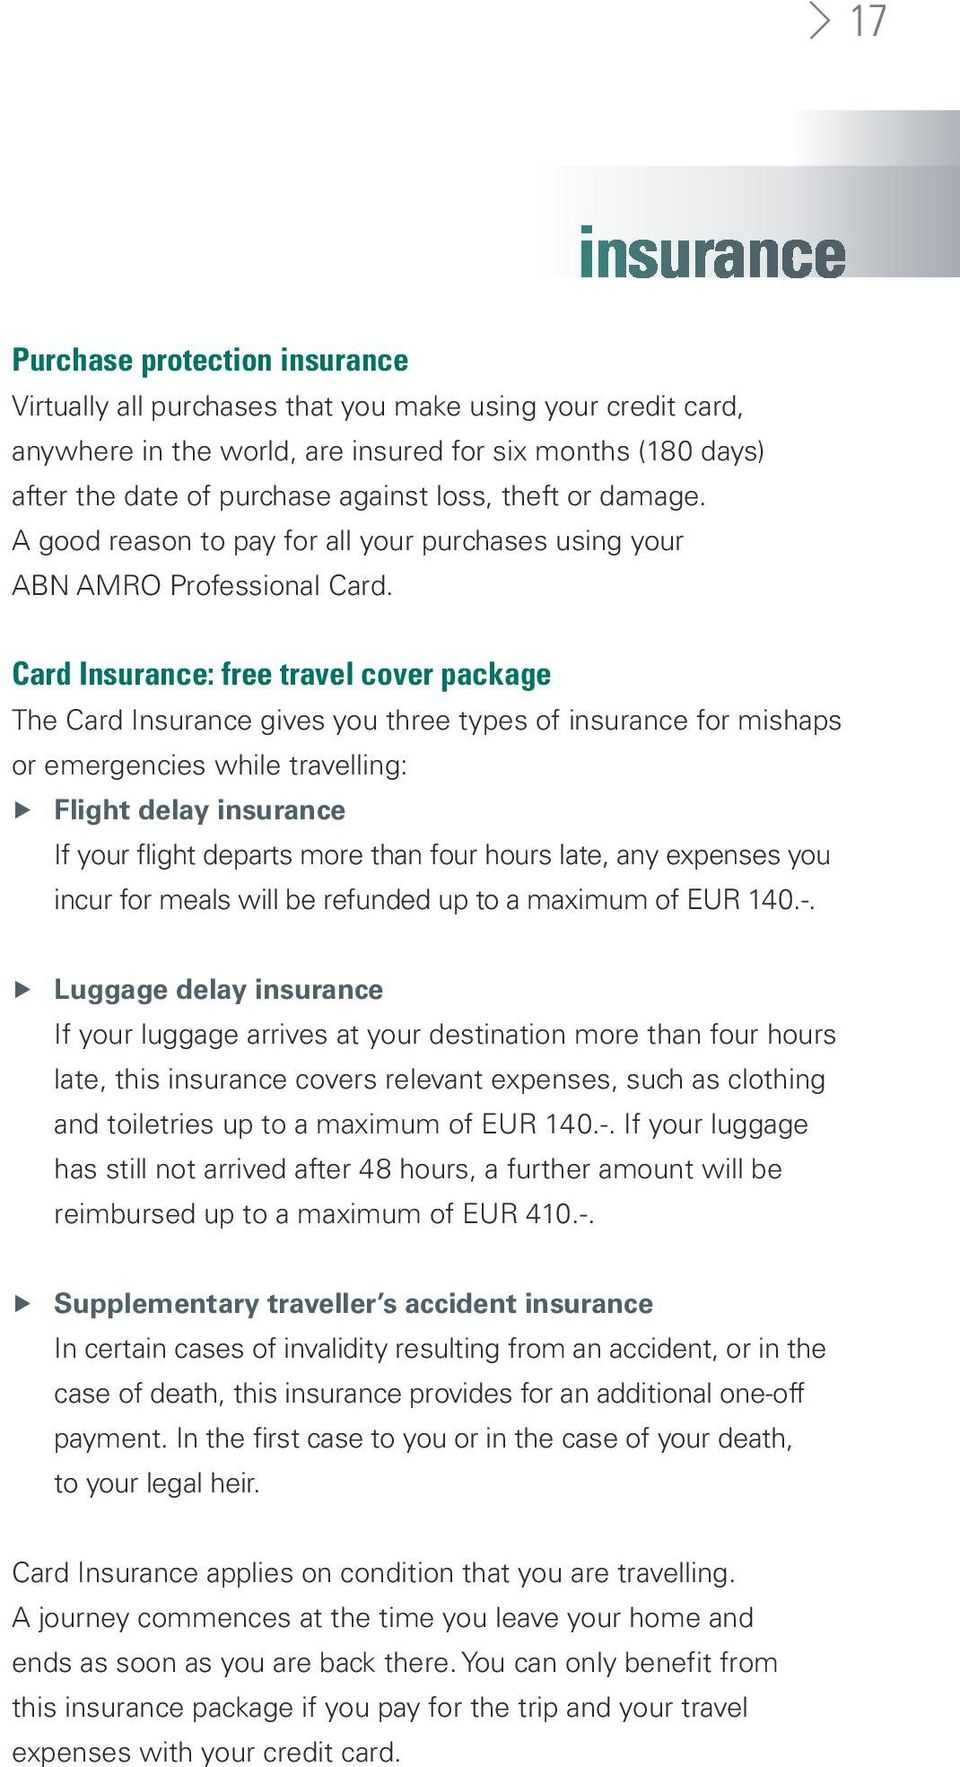 Card Insurance: free travel cover package The Card Insurance gives you three types of insurance for mishaps or emergencies while travelling: Flight delay insurance If your flight departs more than